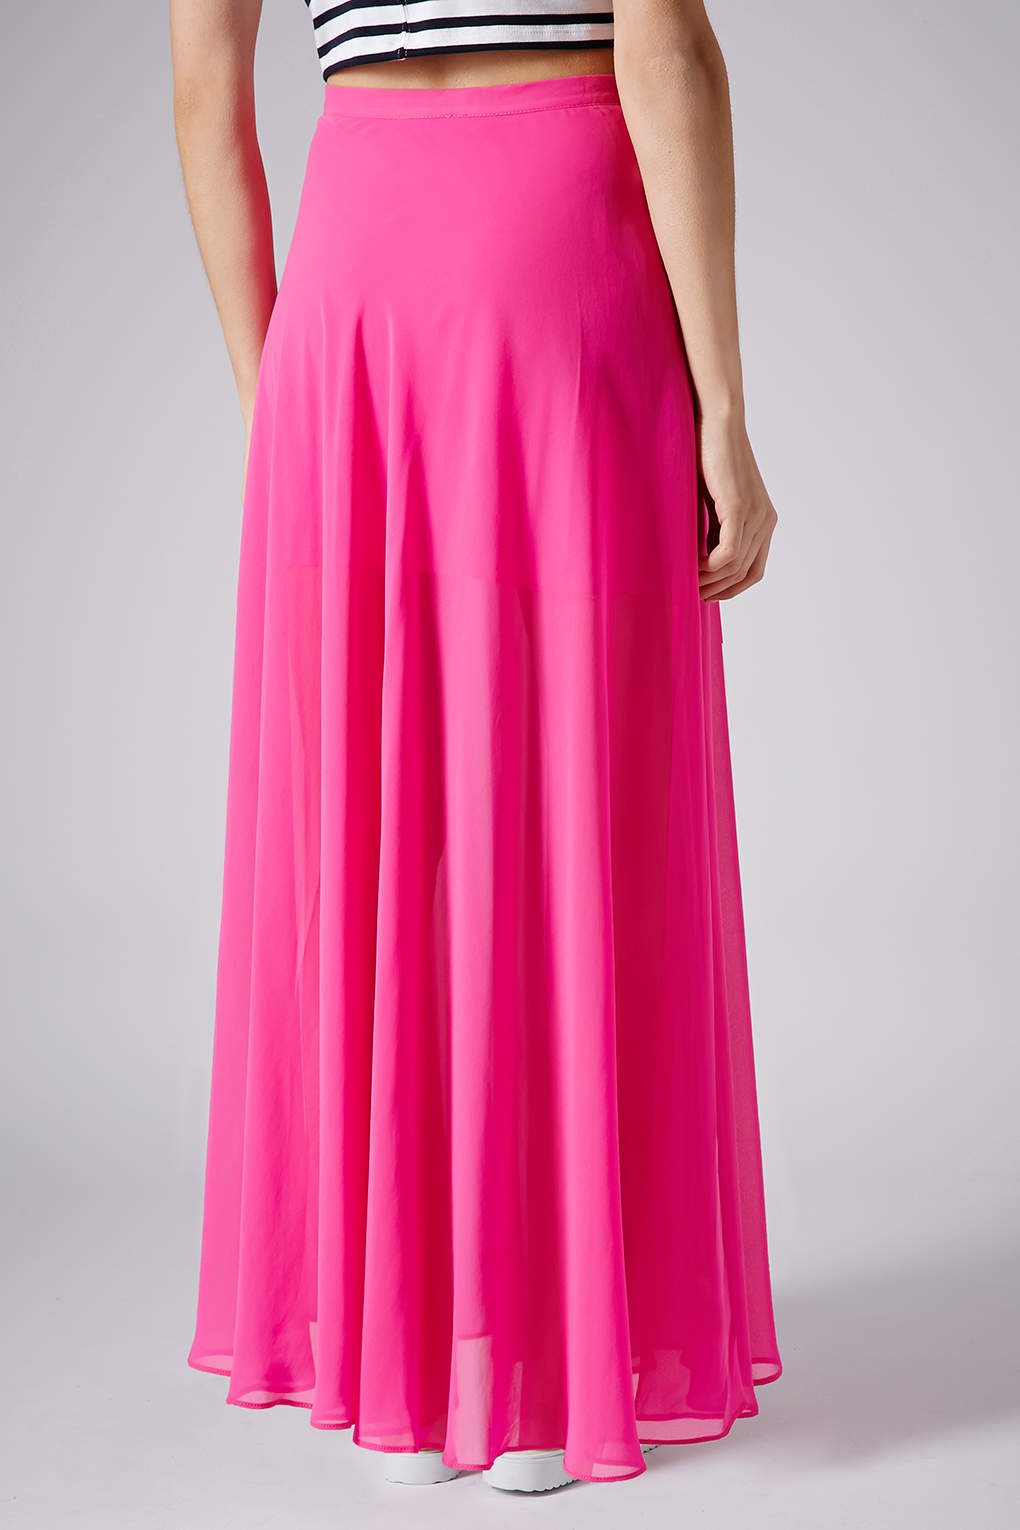 Topshop Pink Chiffon Maxi Skirt in Pink | Lyst